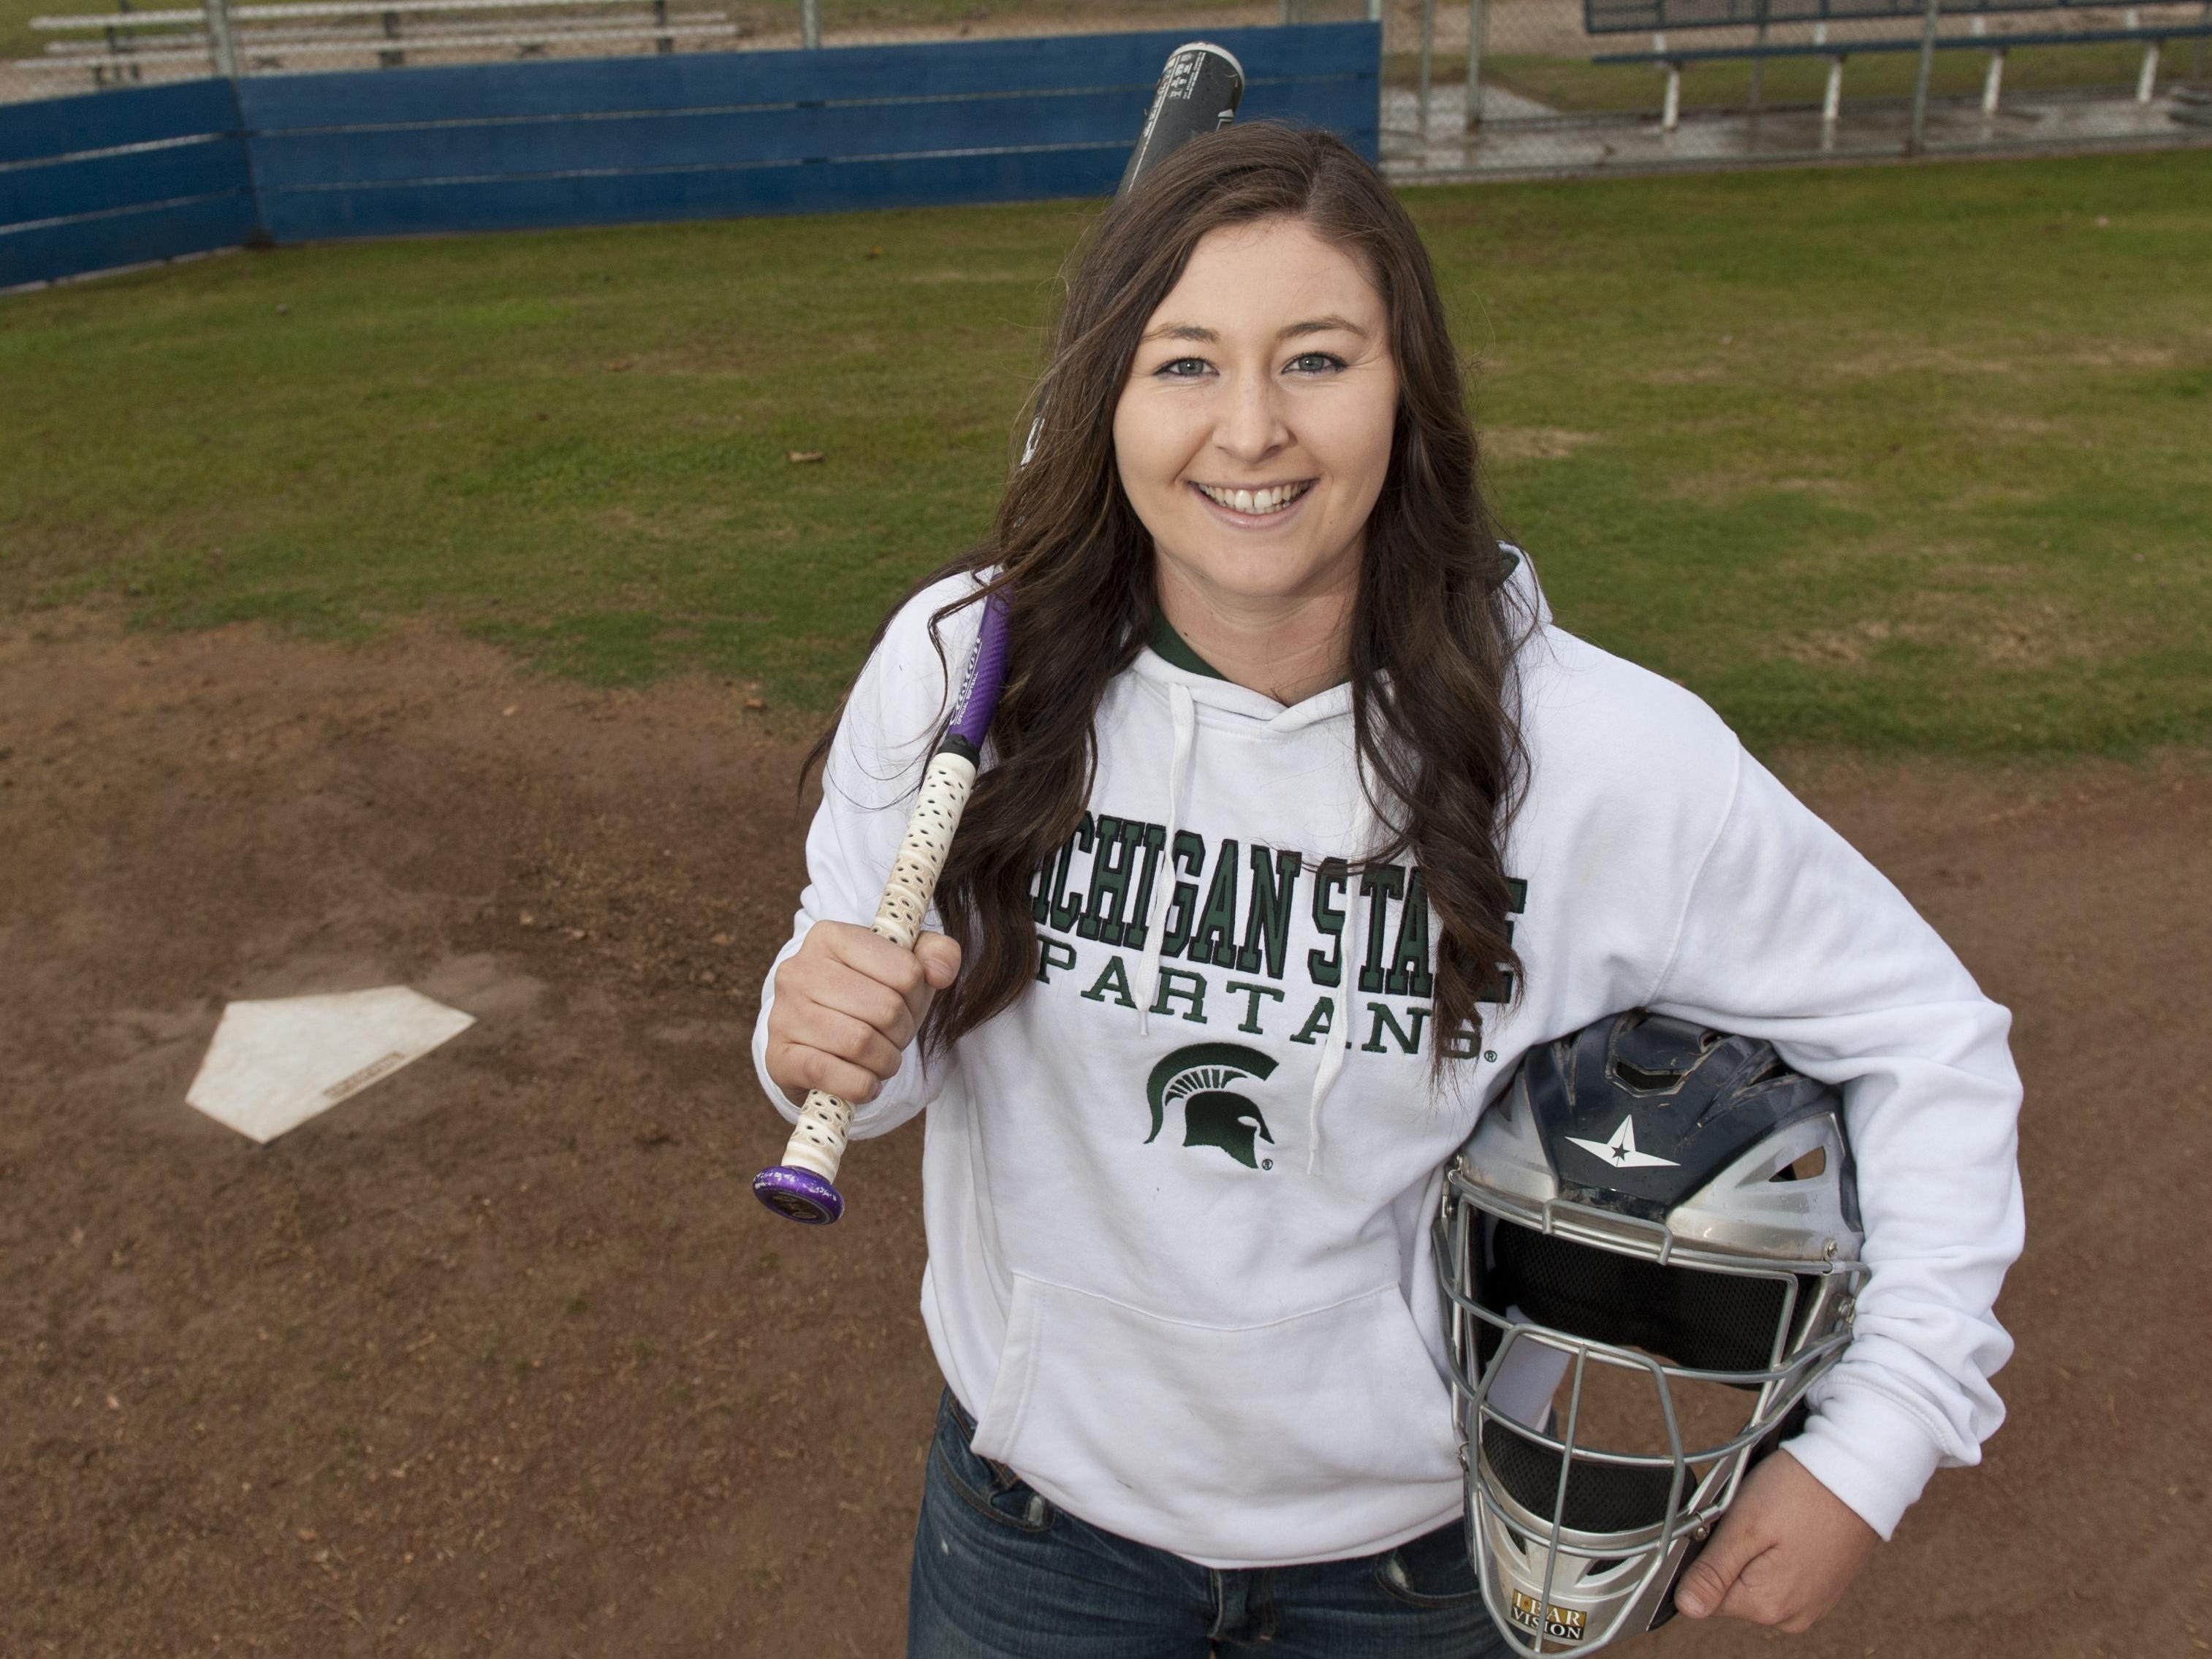 Tulare Western senior Kelcey Carrasco plans to sign a letter of intent today to attend Michigan State on a softball scholarship.